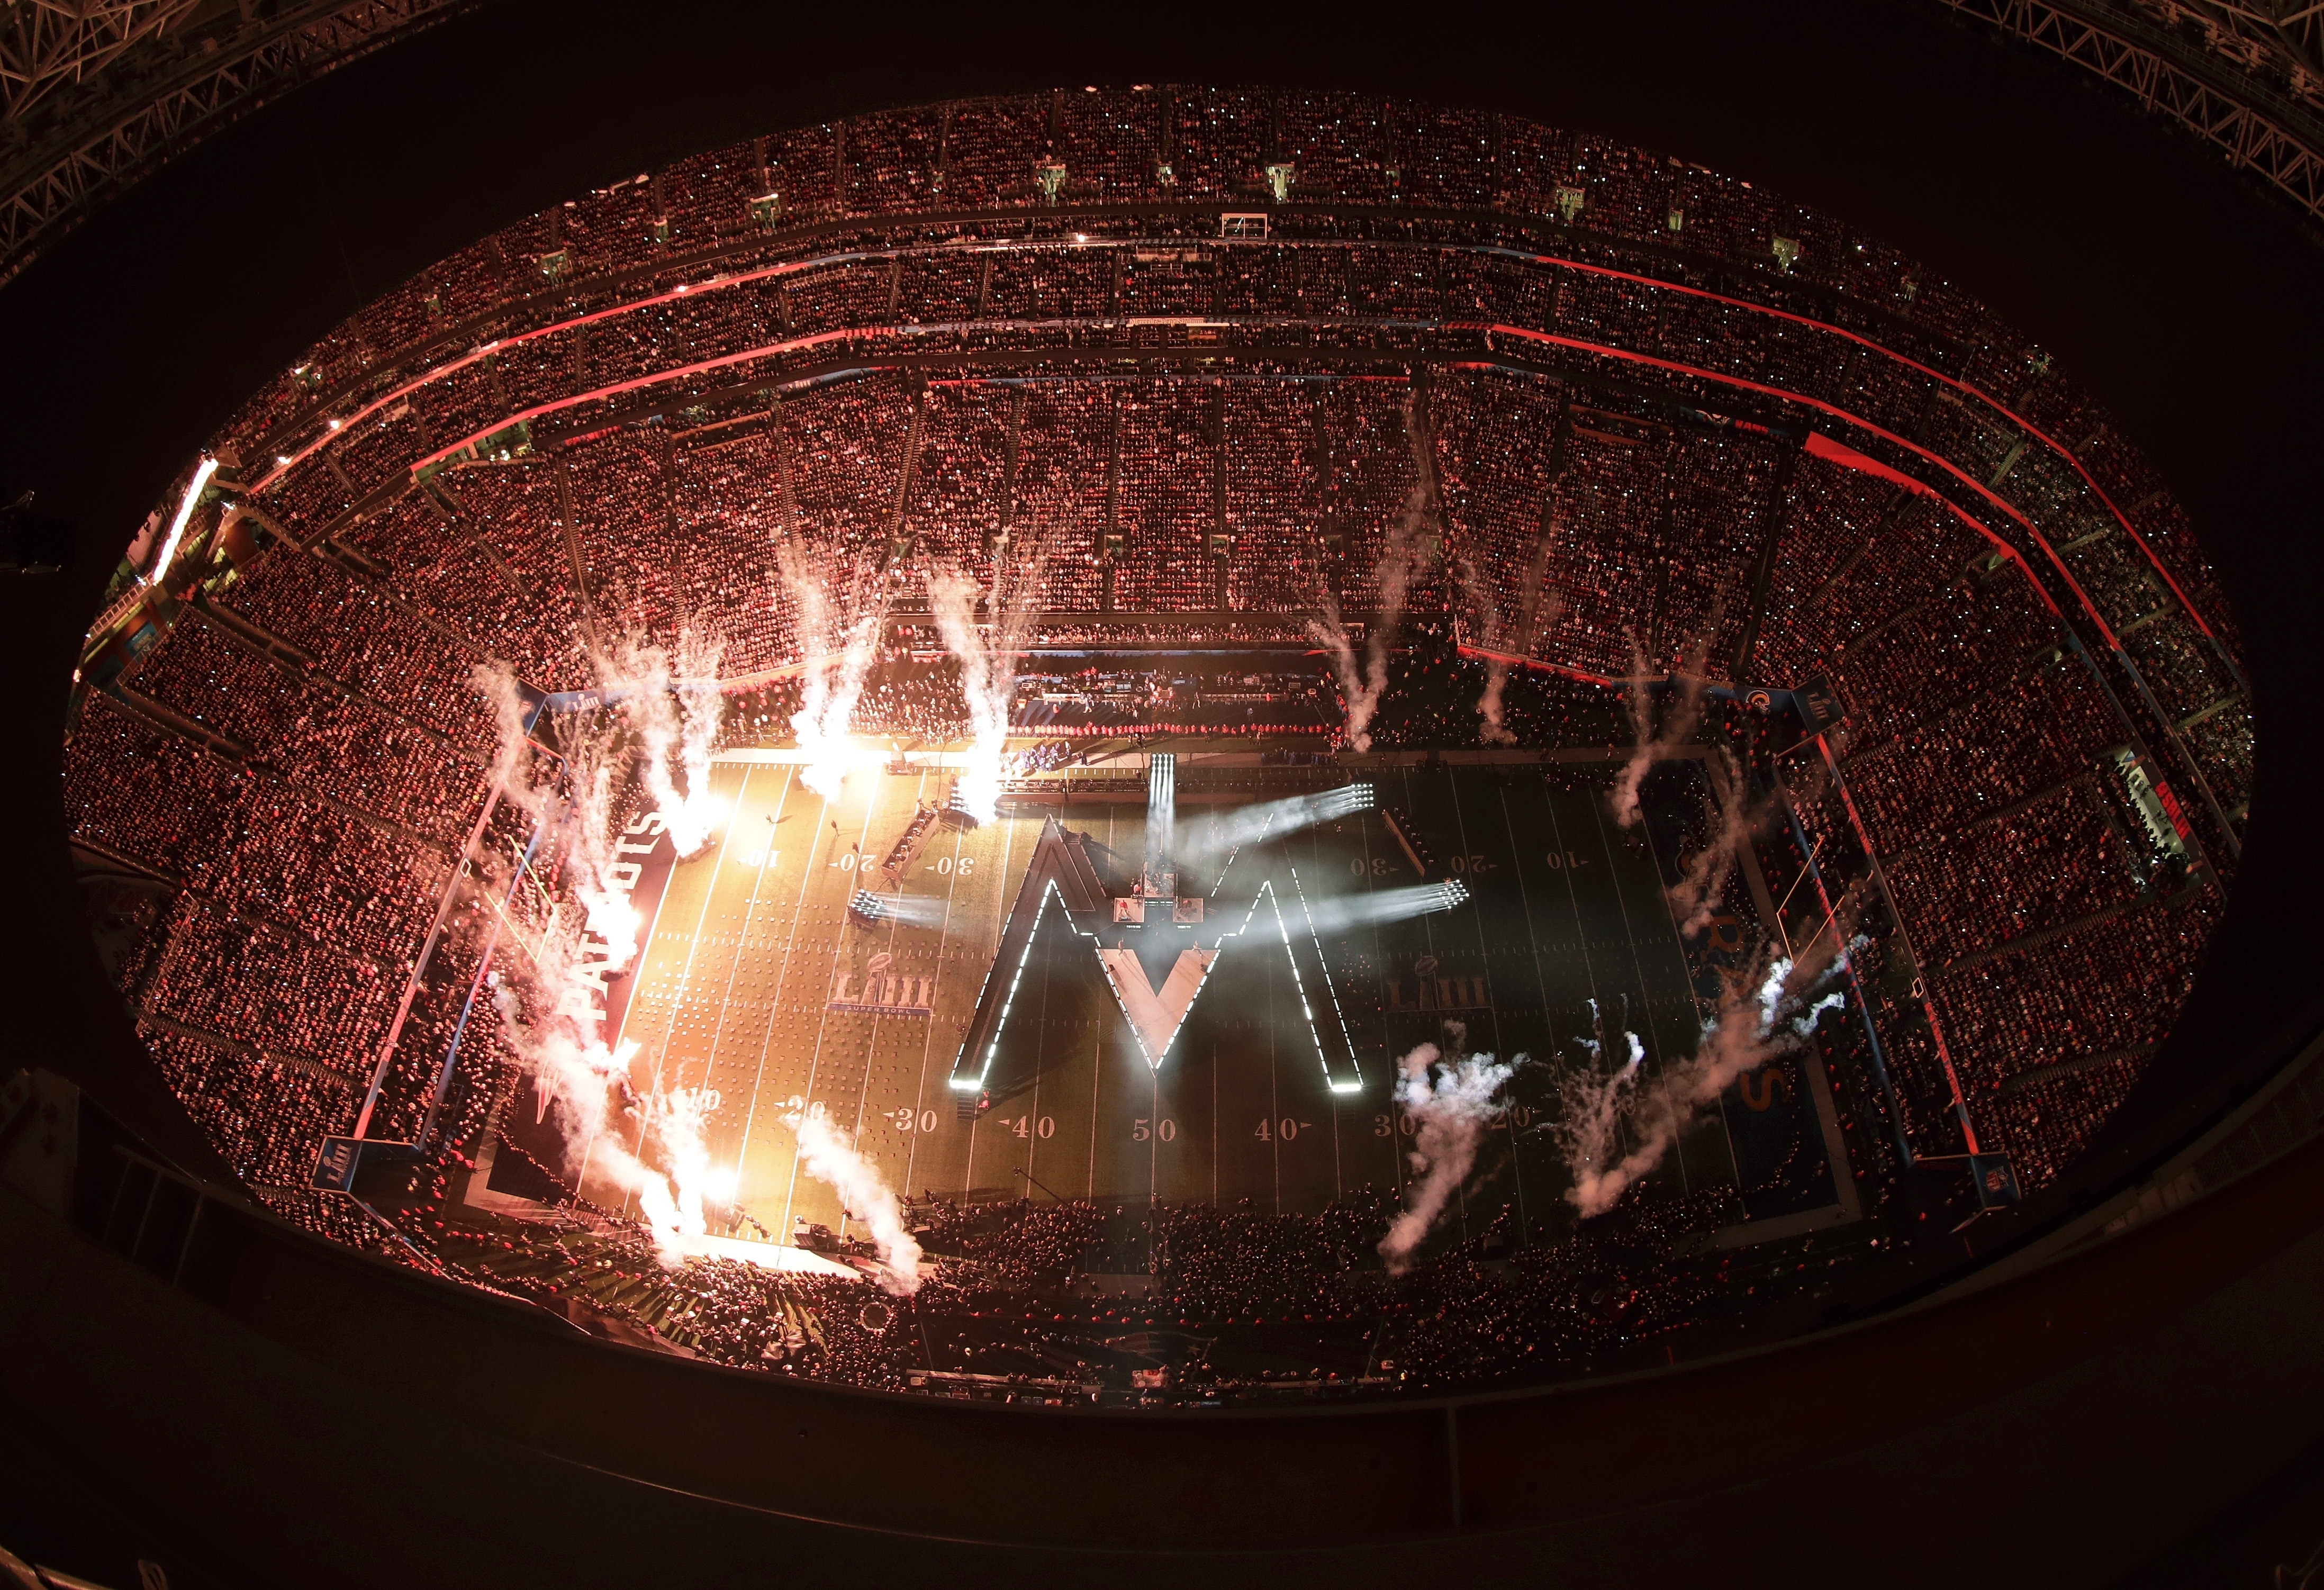 "<div class=""meta image-caption""><div class=""origin-logo origin-image ap""><span>AP</span></div><span class=""caption-text"">Fireworks illuminate the stage during halftime of the NFL Super Bowl 53 football game between the Los Angeles Rams and the New England Patriots Sunday, Feb. 3, 2019, in Atlanta. (AP Photo/Morry Gash)</span></div>"